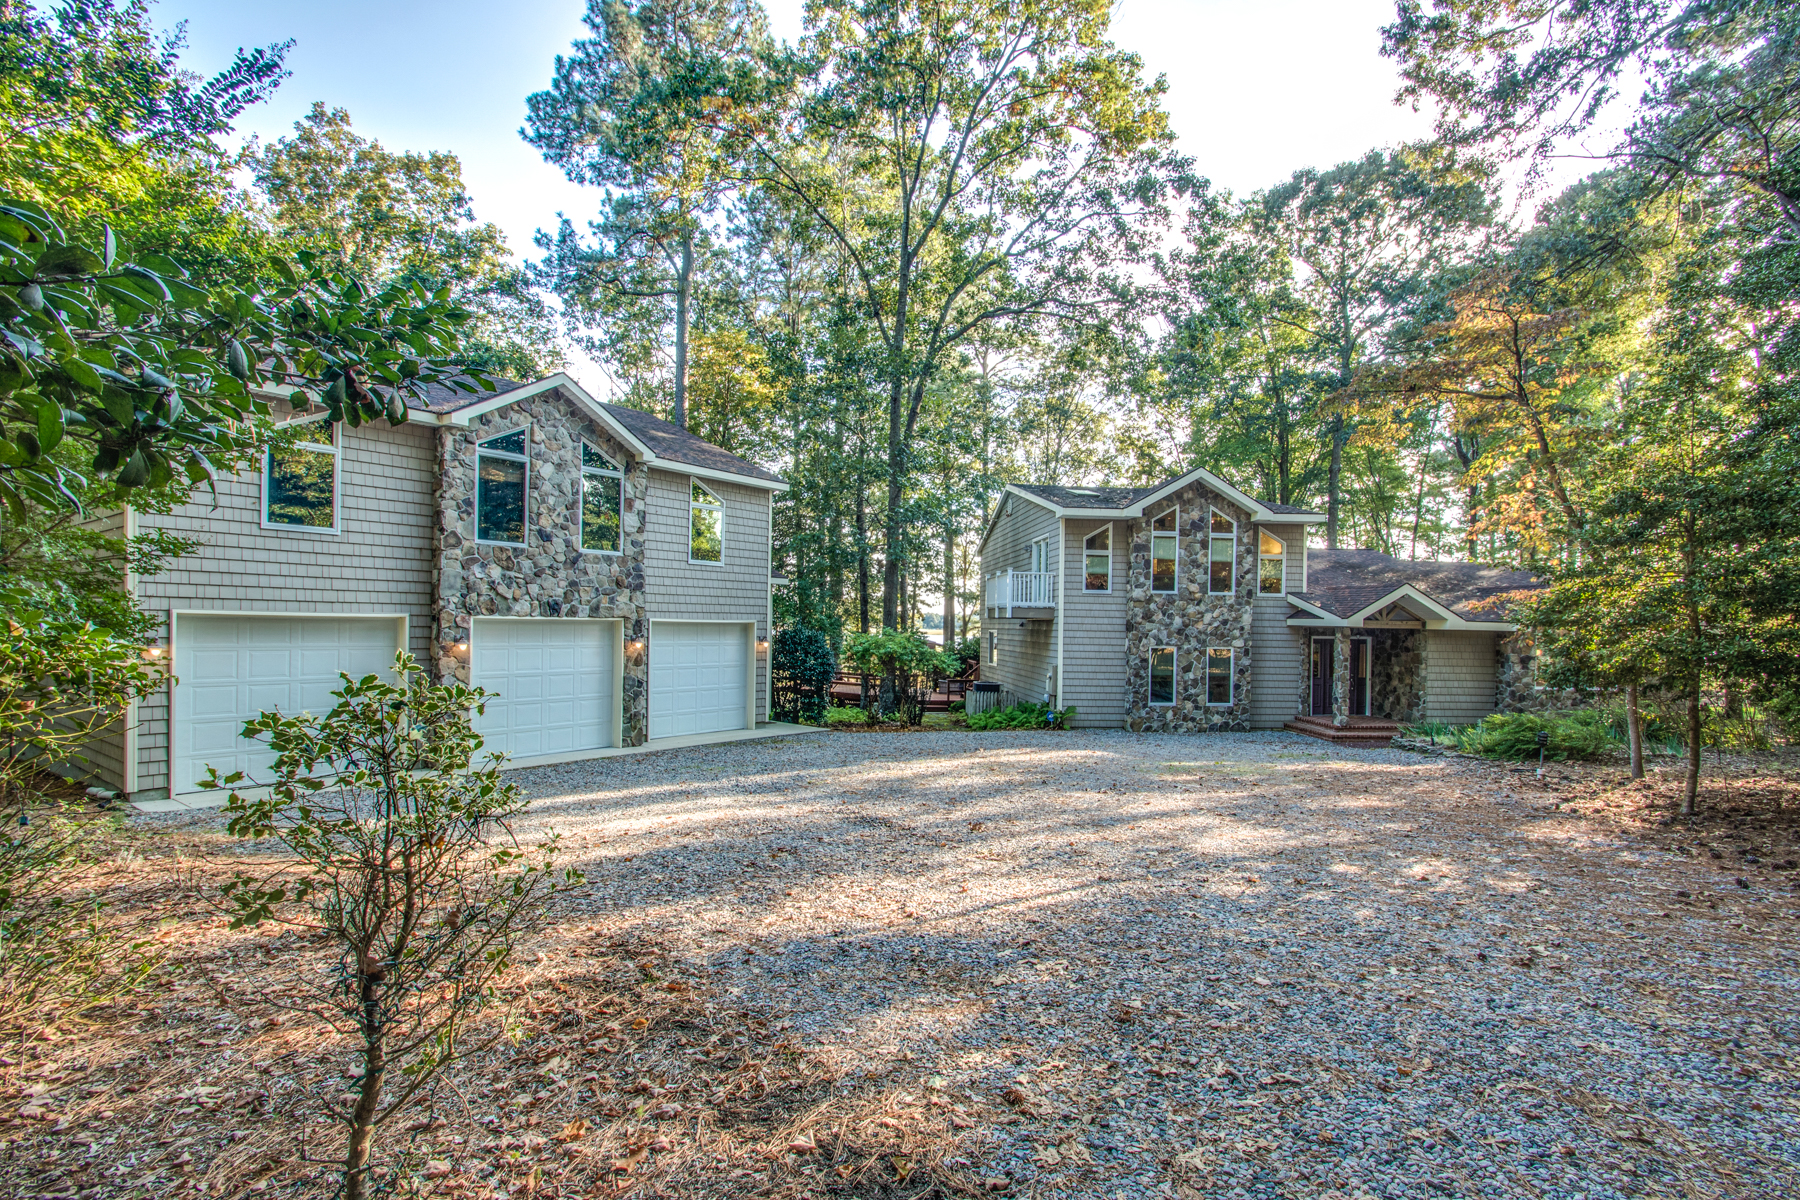 Single Family Home for Sale at 34560 Doe Run , Lewes, DE 19958 34560 Doe Run, Lewes, Delaware 19958 United States